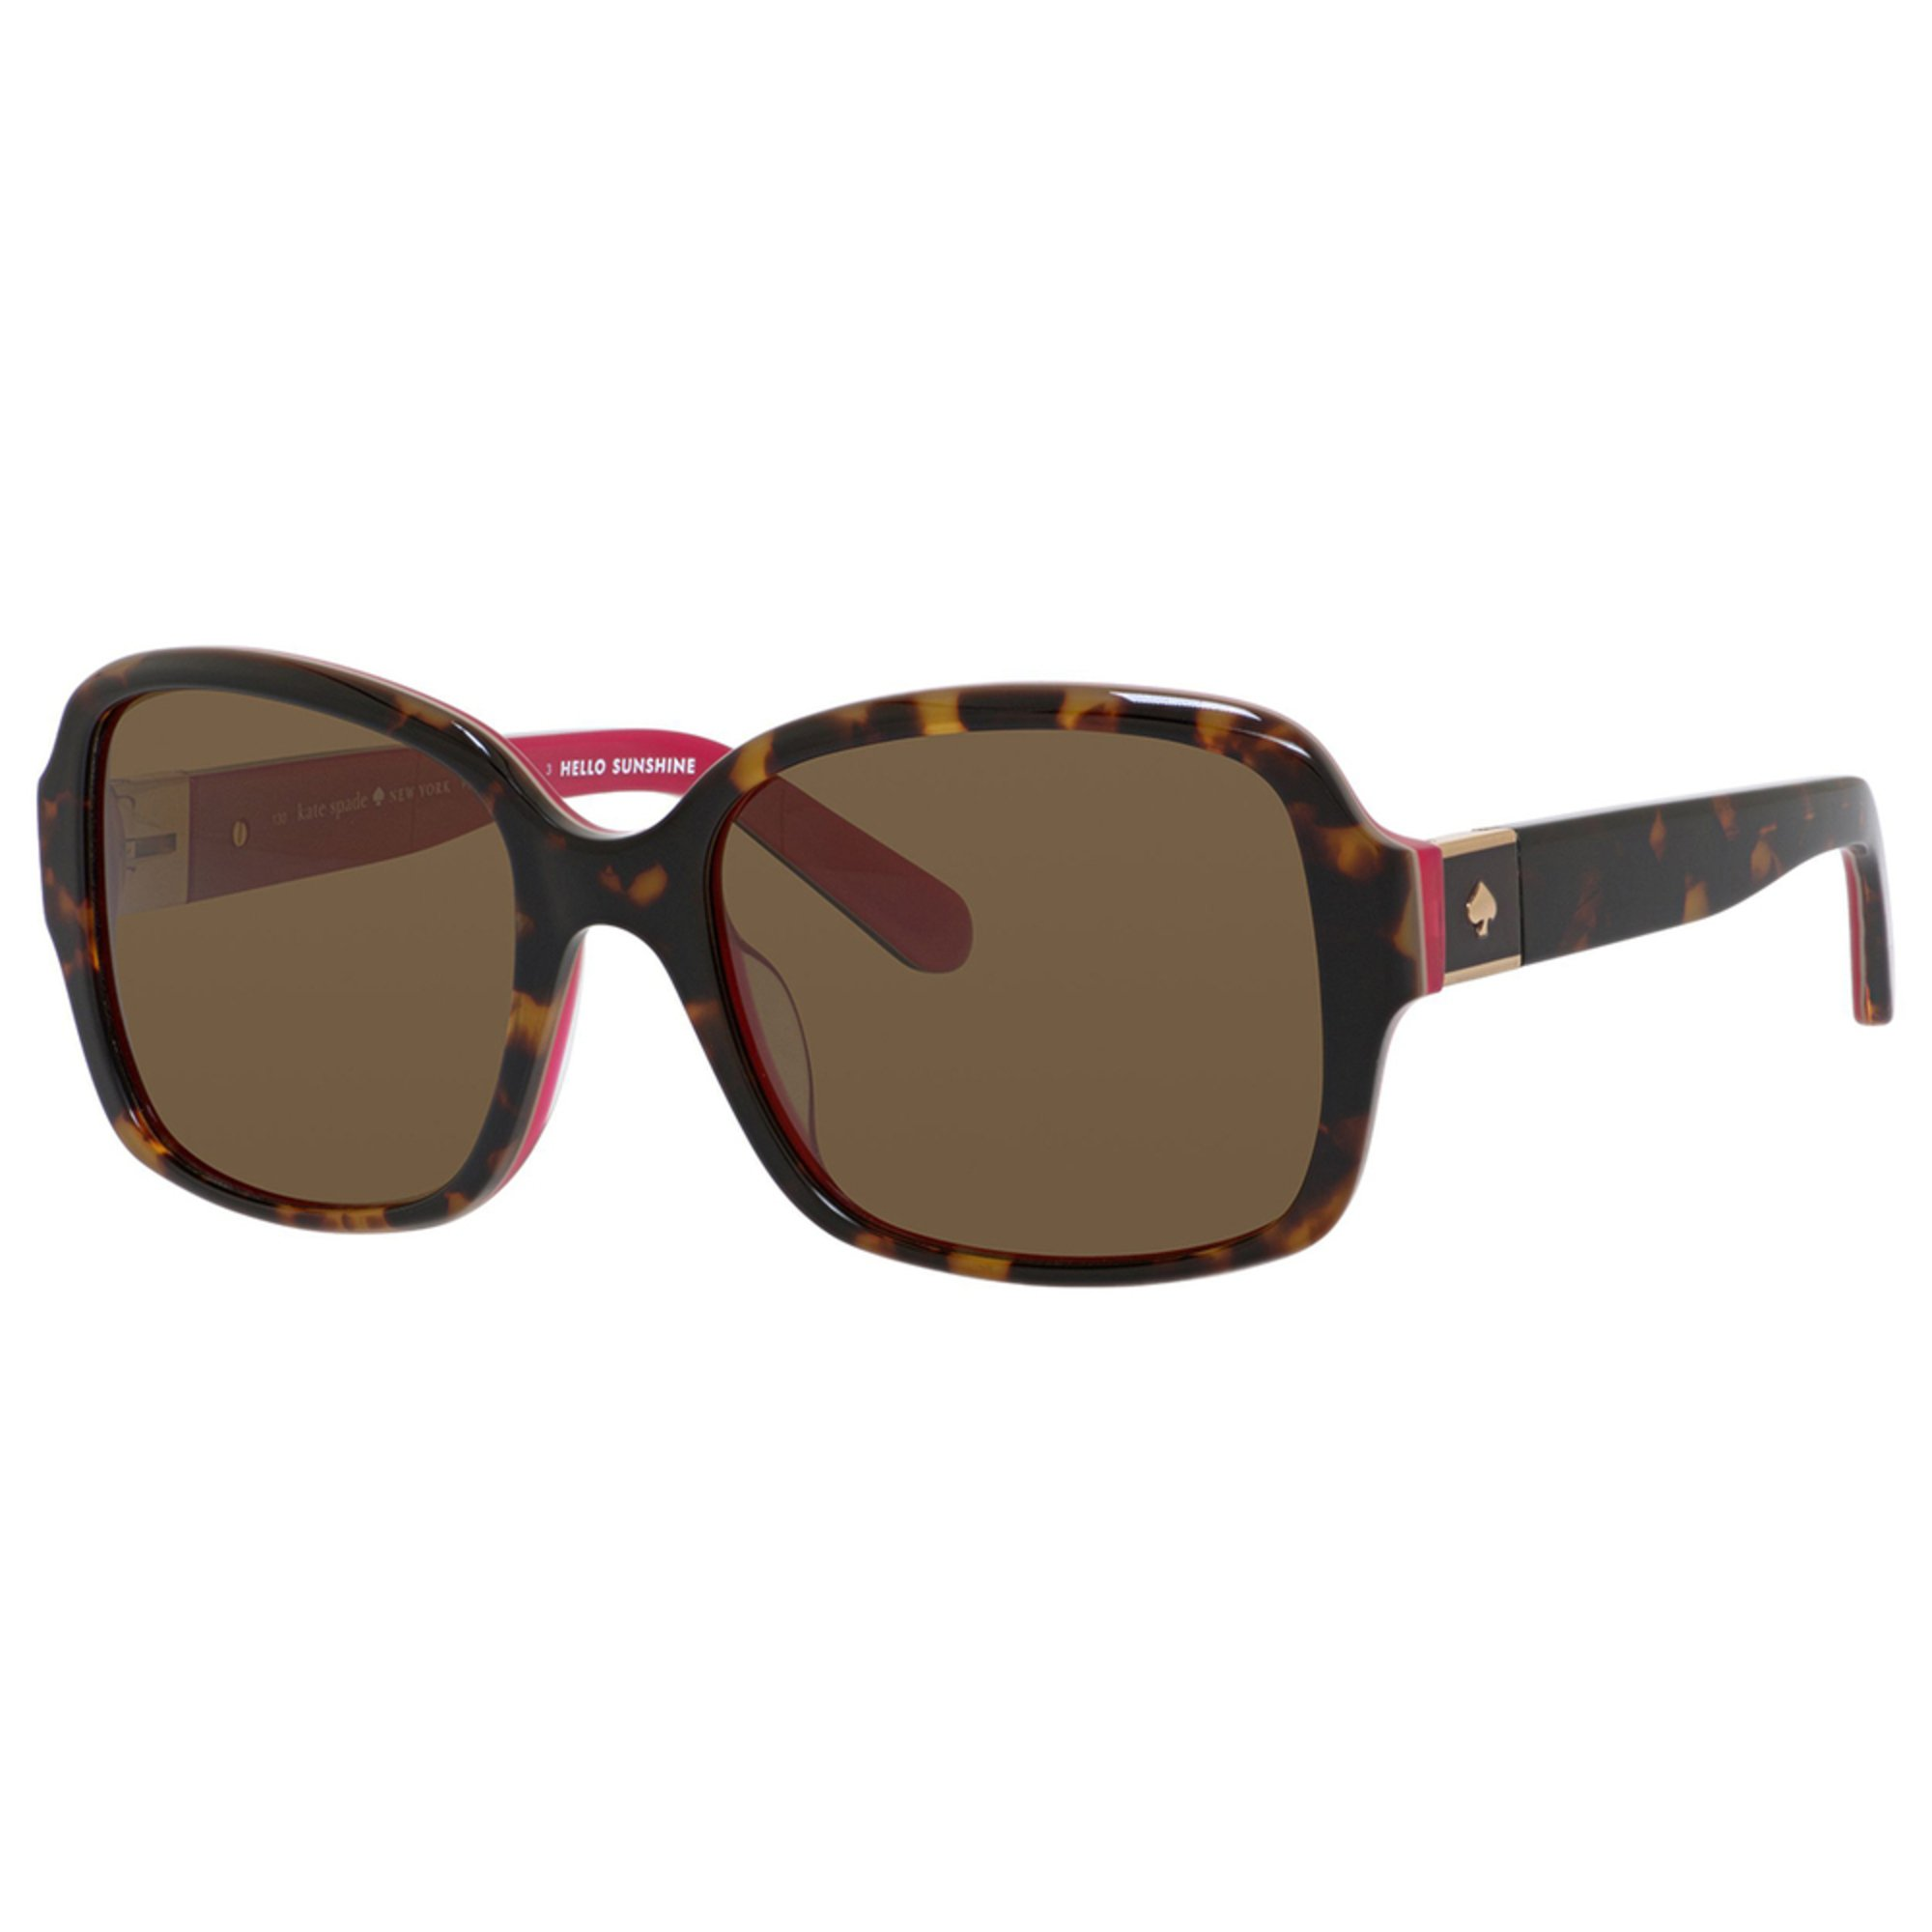 451c25f6997d Kate Spade New York. Kate Spade New York Women s Annora Sunglasses